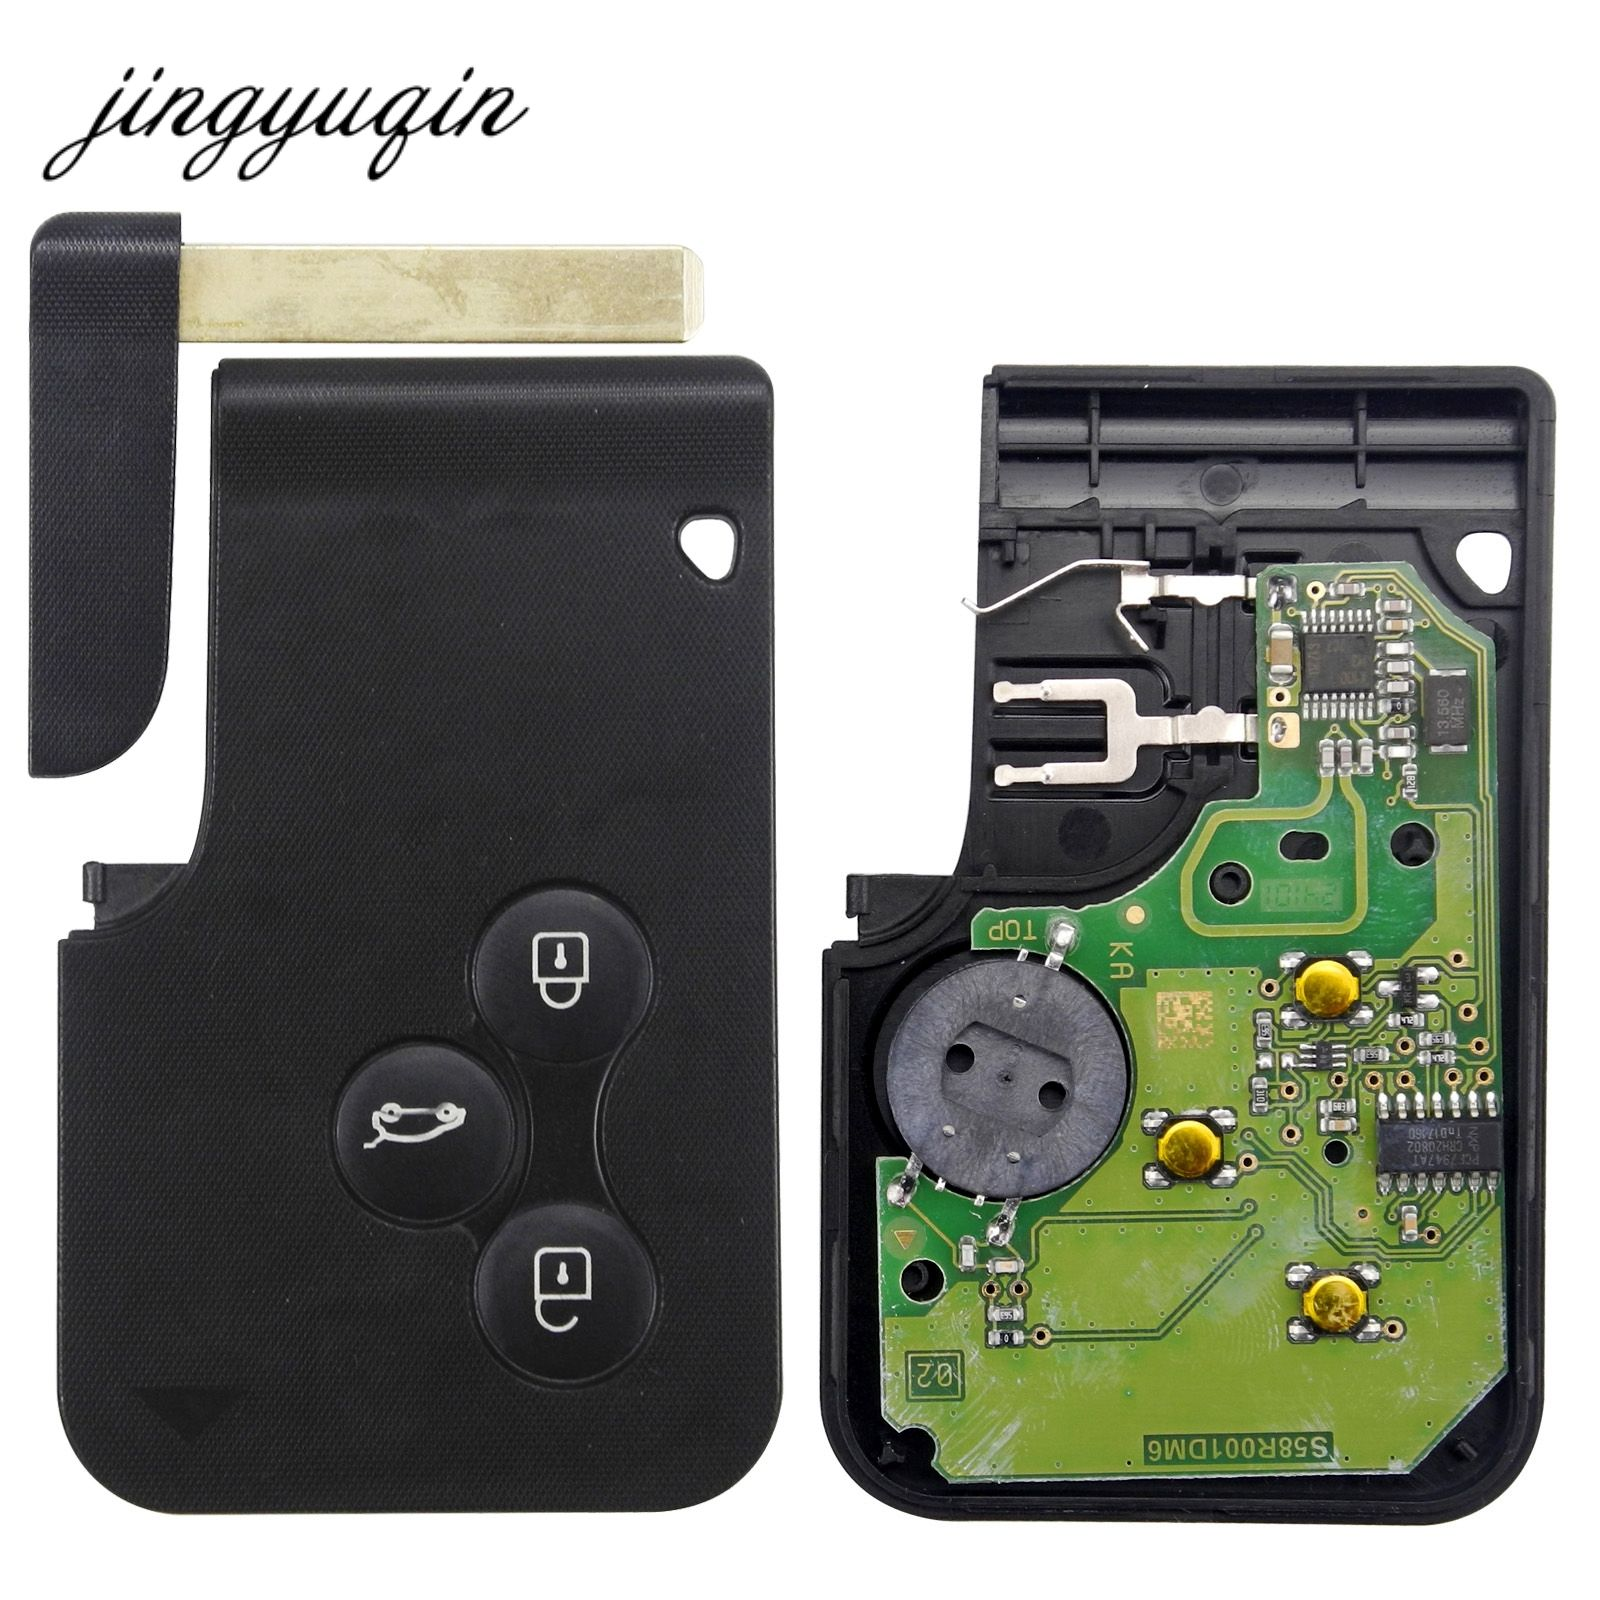 jingyuqin Smart Key Card for Renault Megane II Scenic II Grand Scenic 2003-2008 433mhz <font><b>PCF7947</b></font> Chip ID46 3 Button Remote PCB